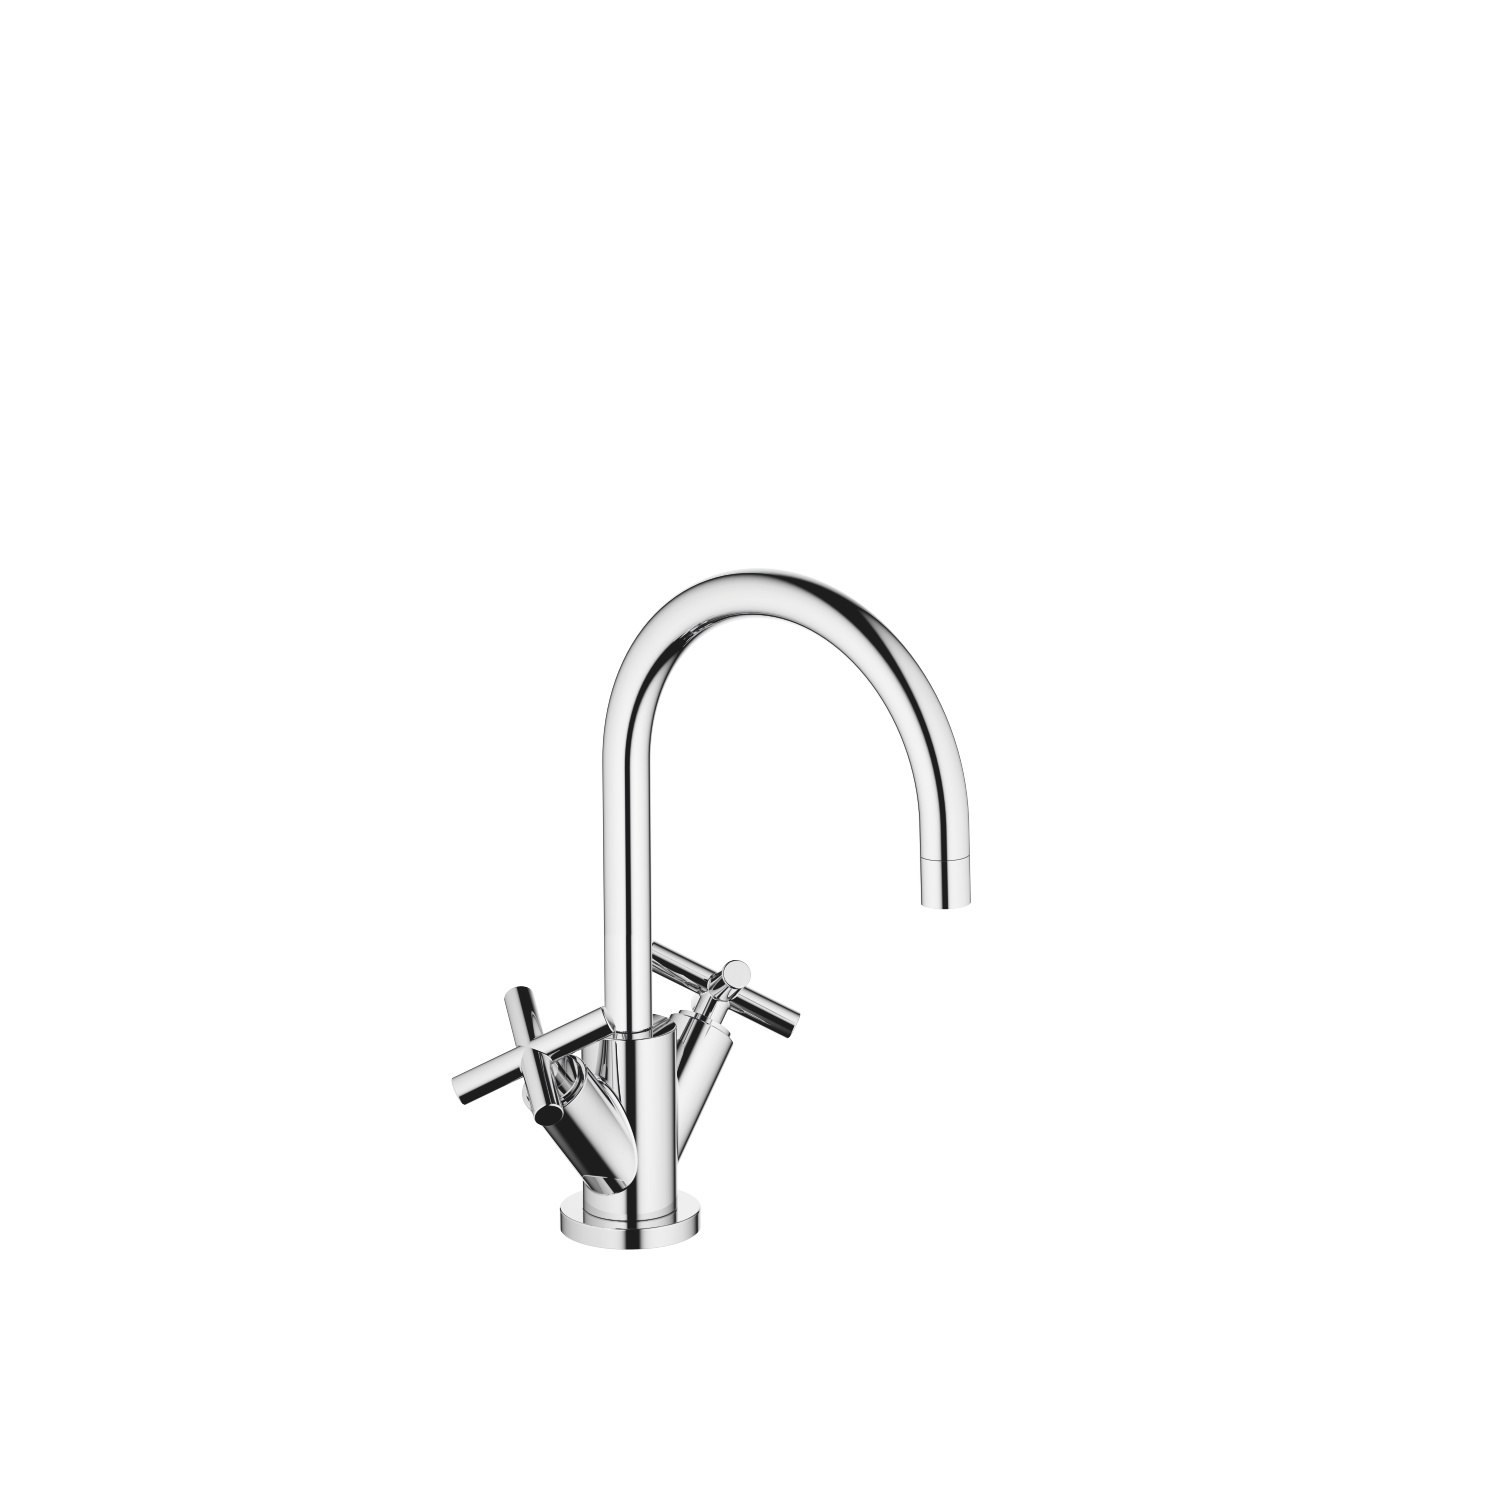 Single-hole basin mixer with pop-up waste - polished chrome - 22 513 892-00